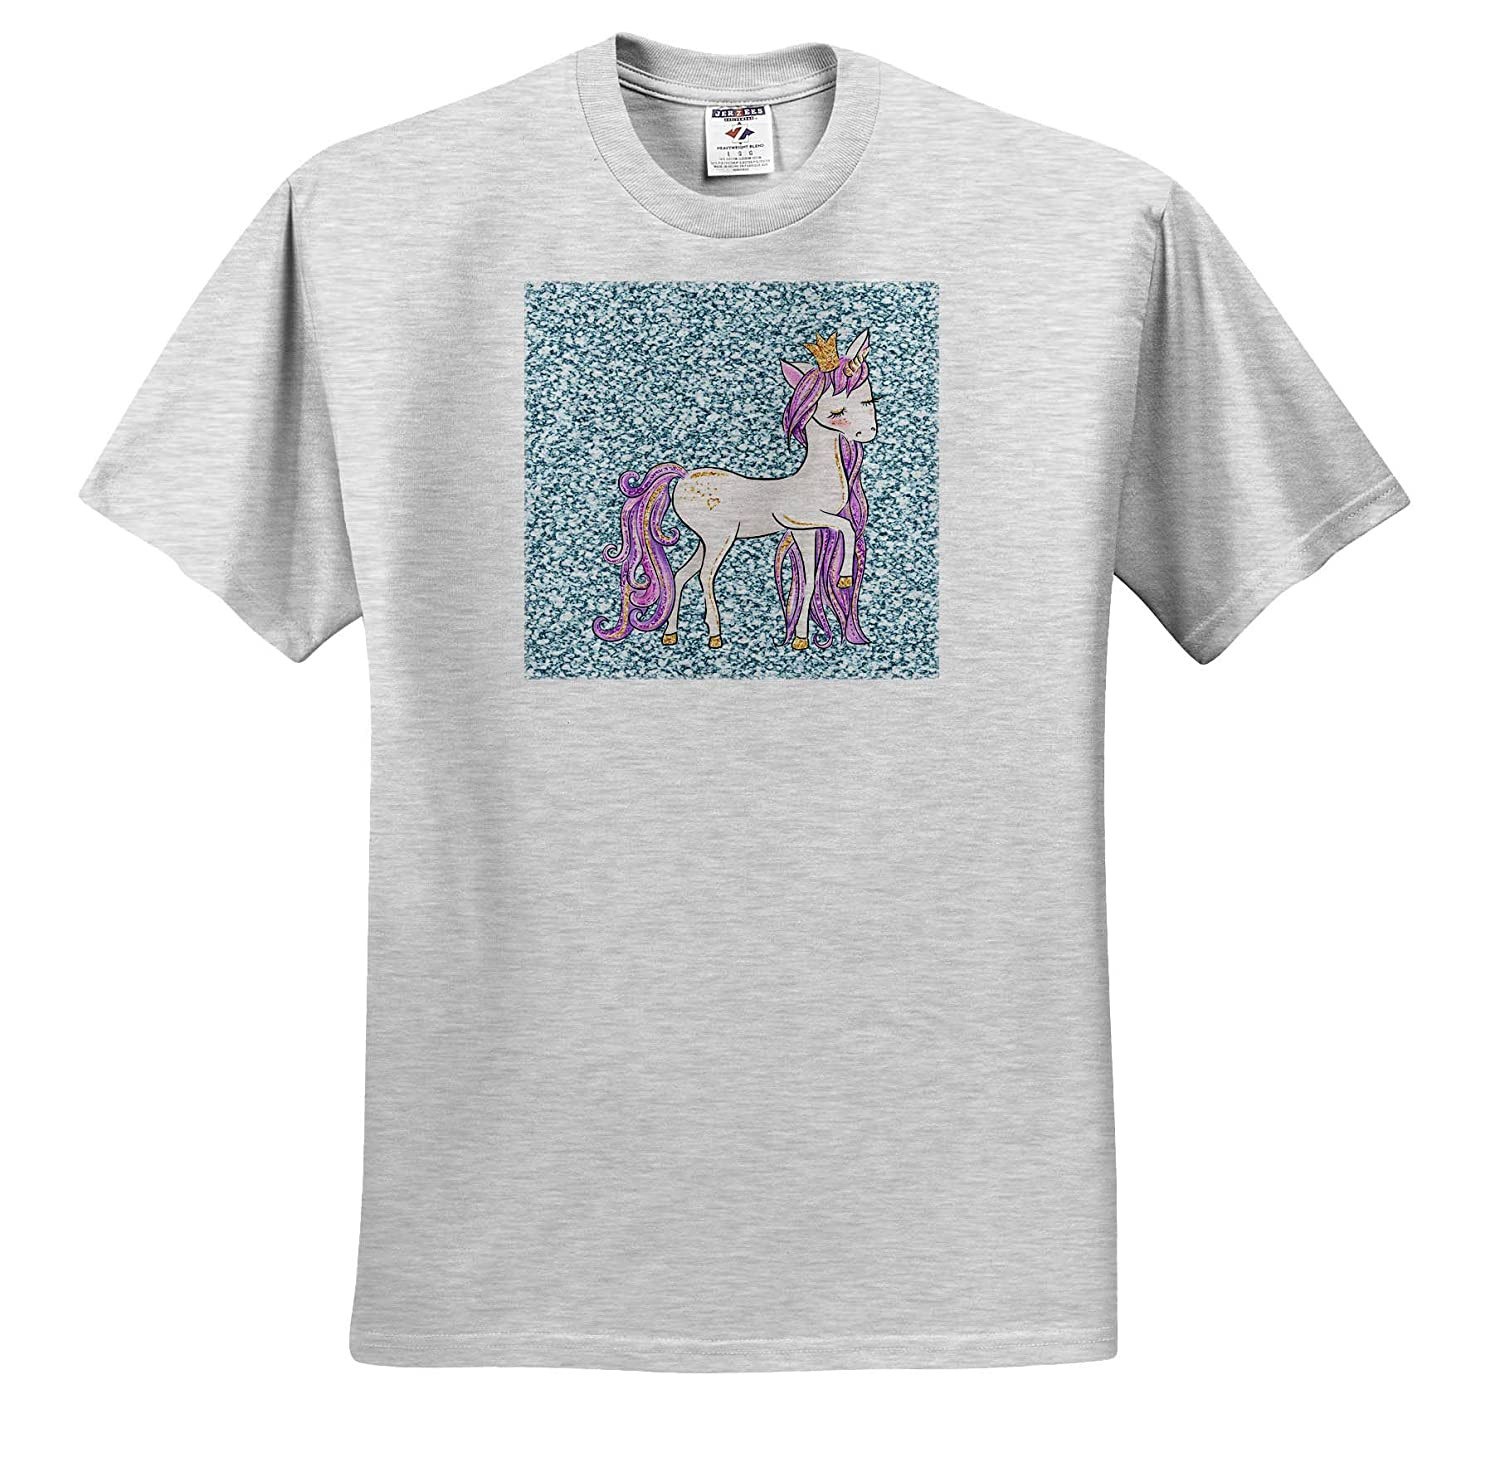 Unicorn Horse on Sparkly Print Background T-Shirts 3dRose Made in The Highlands Art- Unicorn Horse